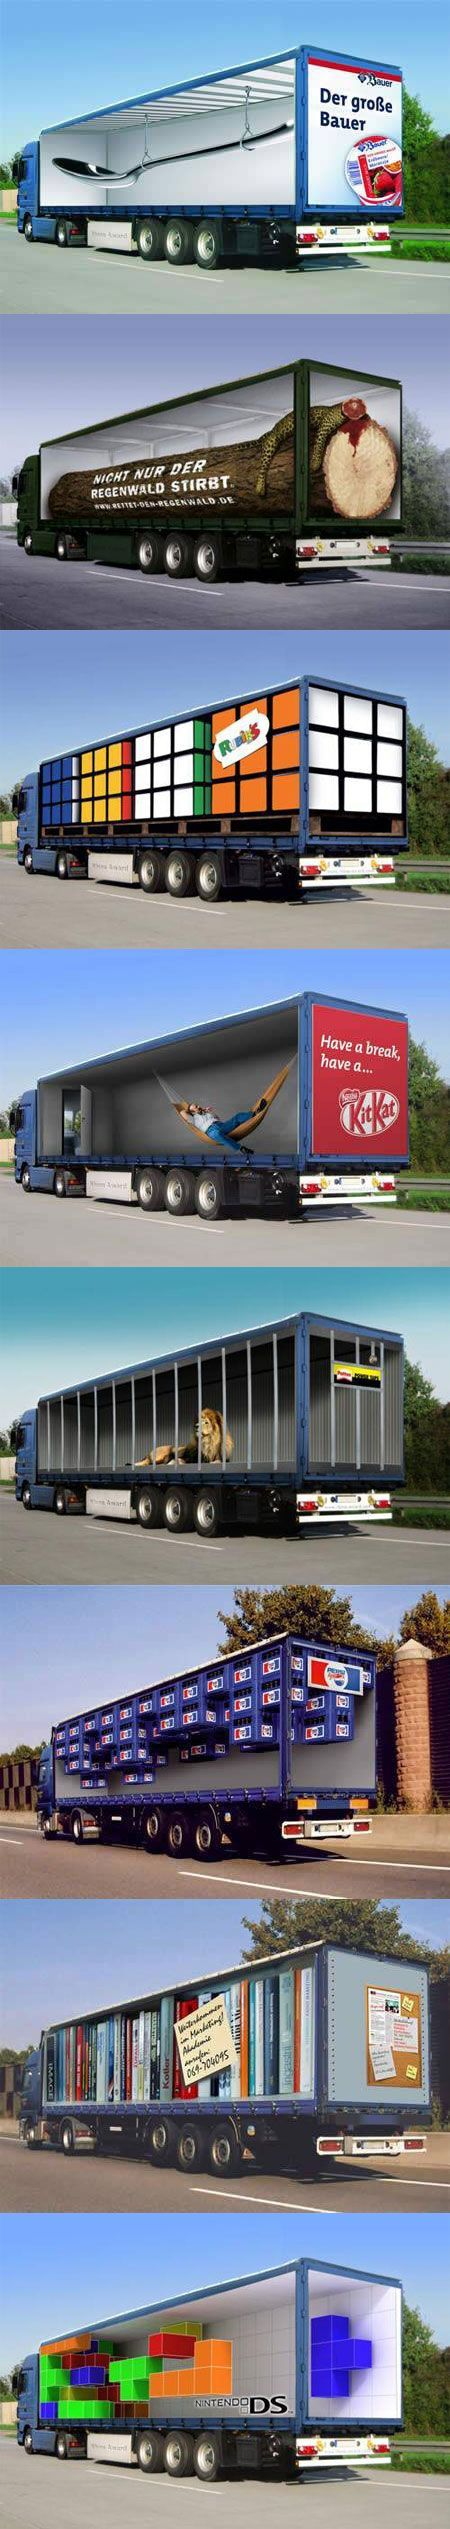 Creative Lorry Advertisements showing Lorry Designs that Inspire